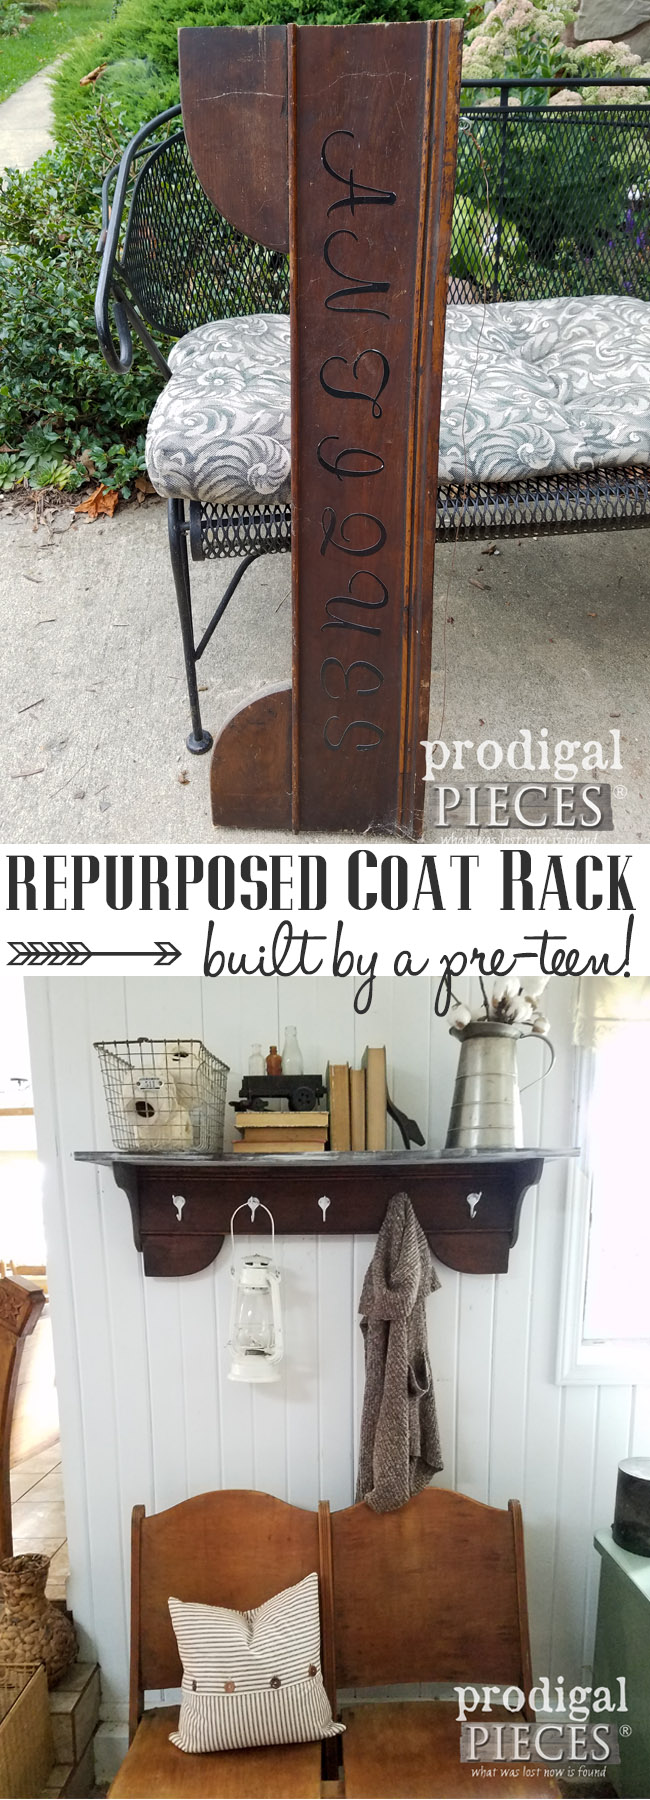 Check out this repurposed coat rack made by a pre-teen in farmhouse style. DIY on the blog at Prodigal Pieces | prodigalpieces.com